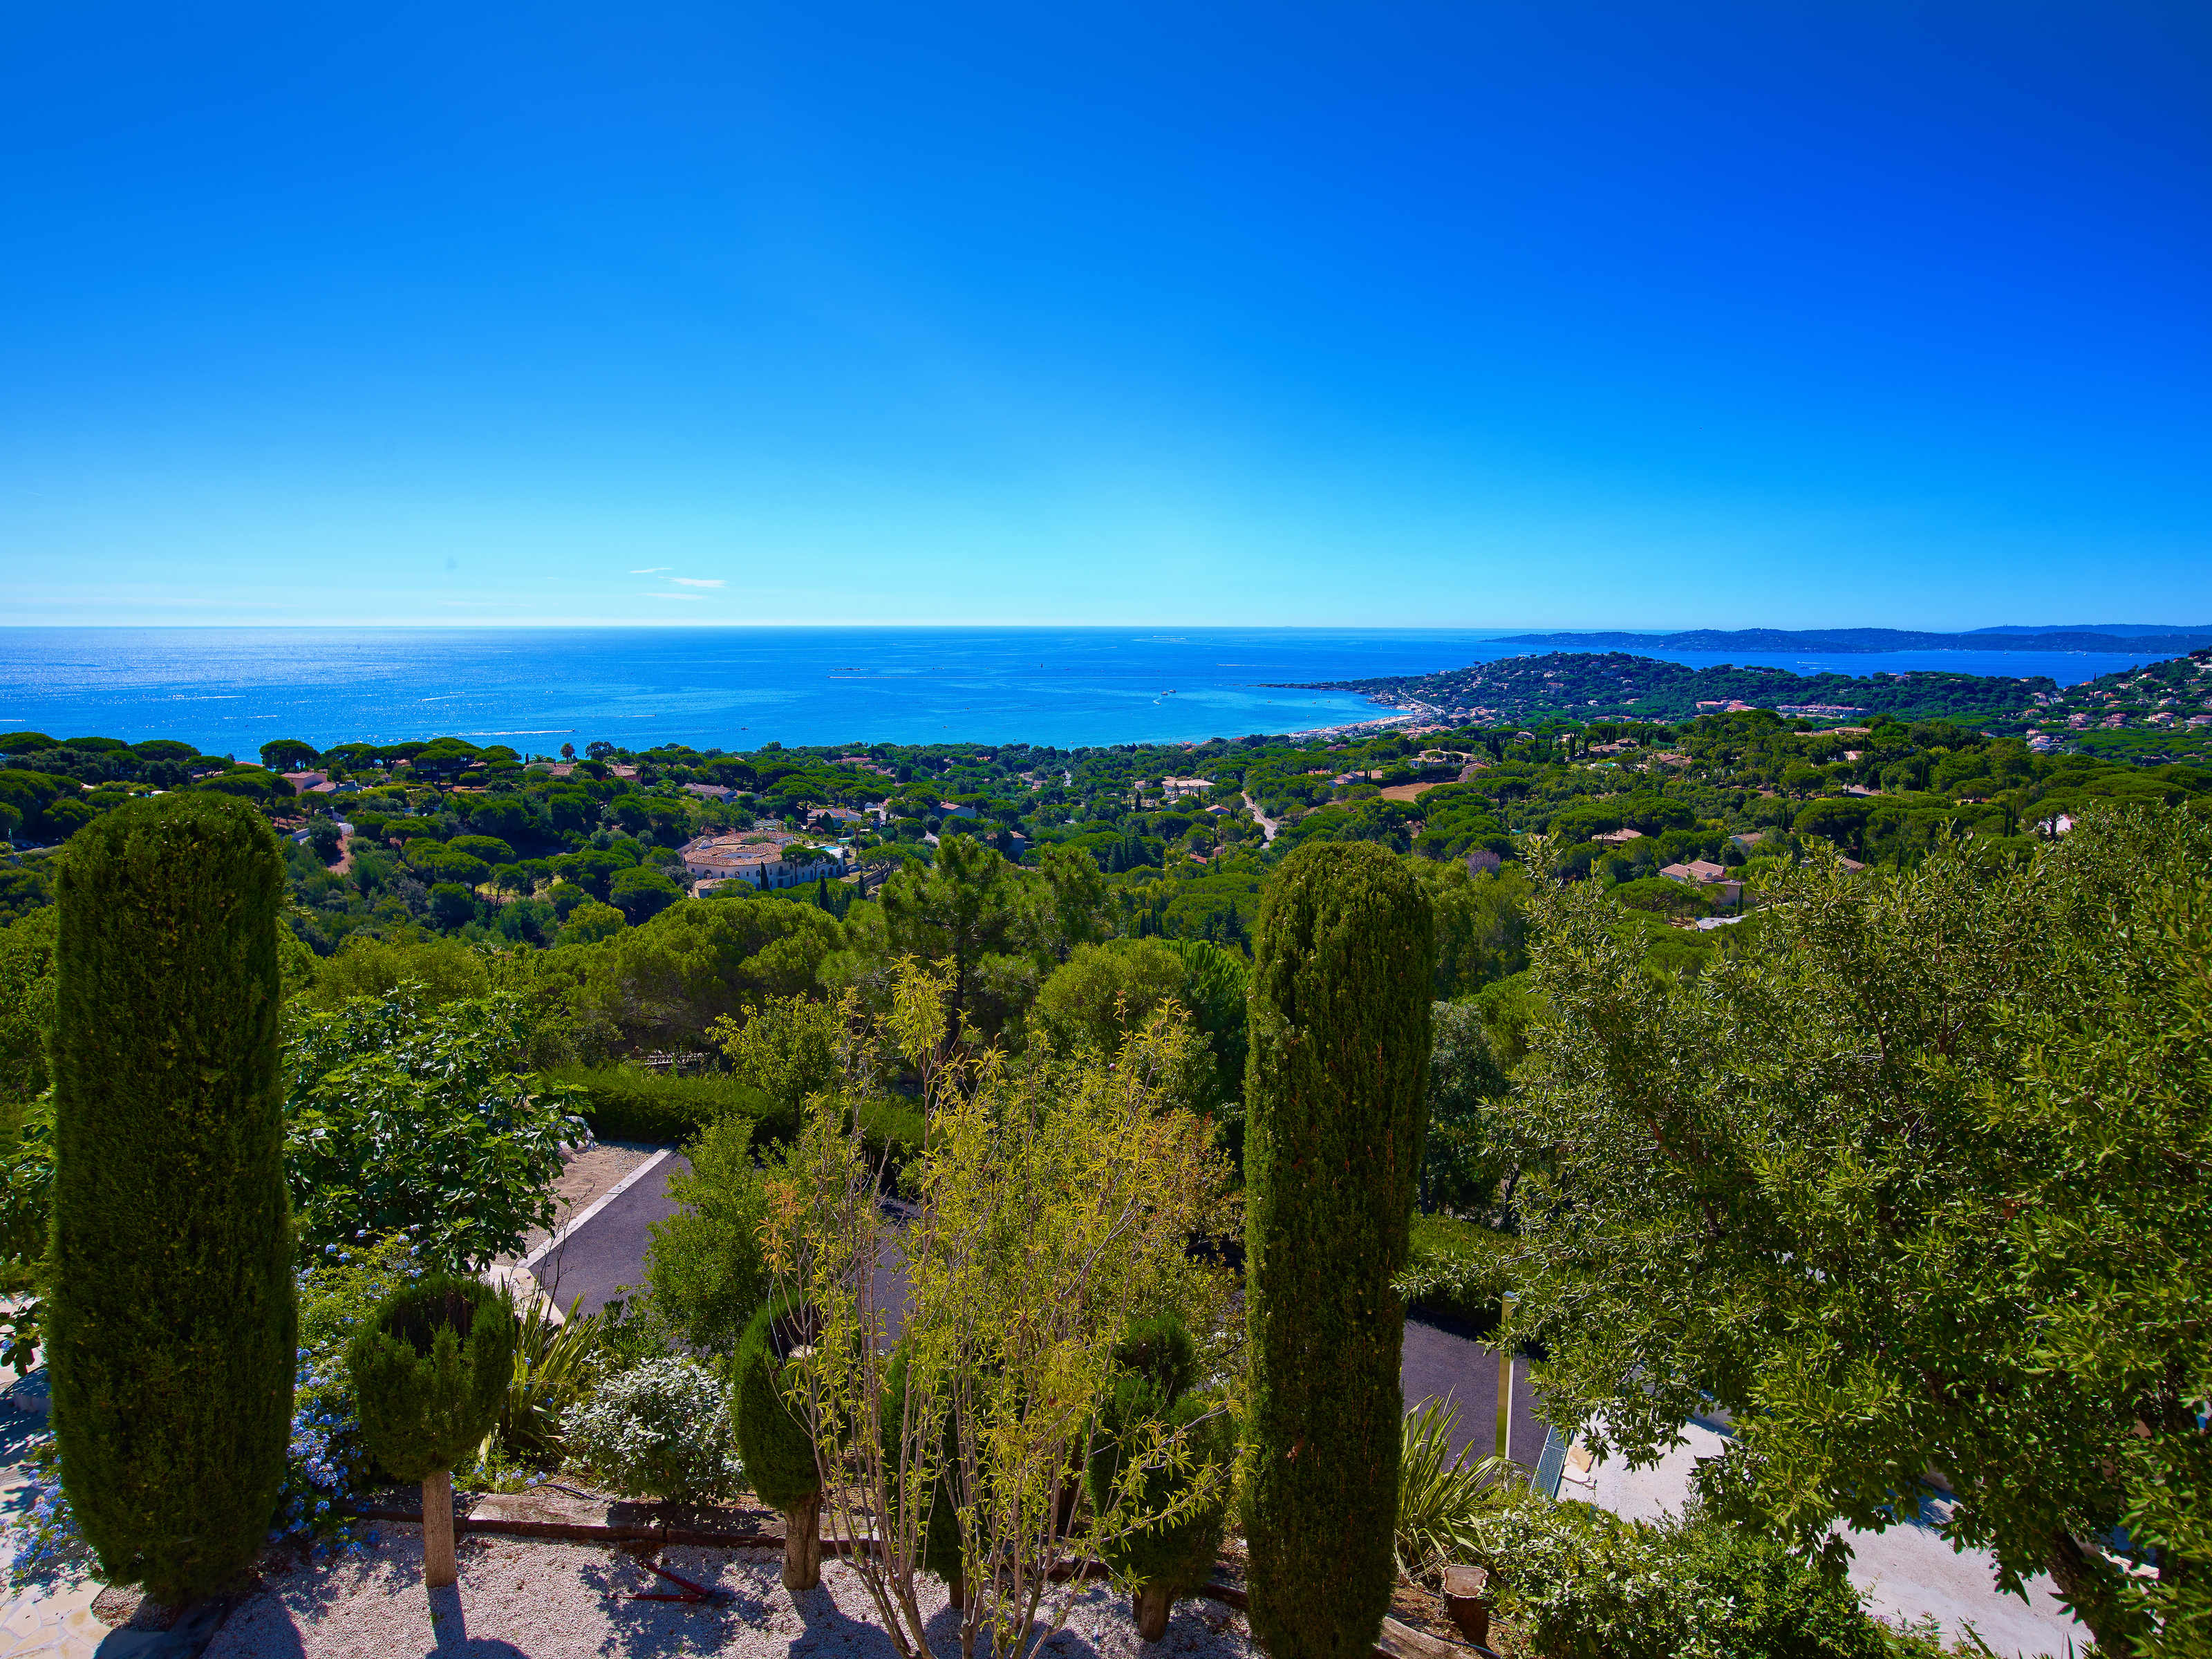 Single Family Home for Sale at Luxurious villa within a private estate with breathtaking sea views Sainte Maxime, Provence-Alpes-Cote D'Azur 83120 France